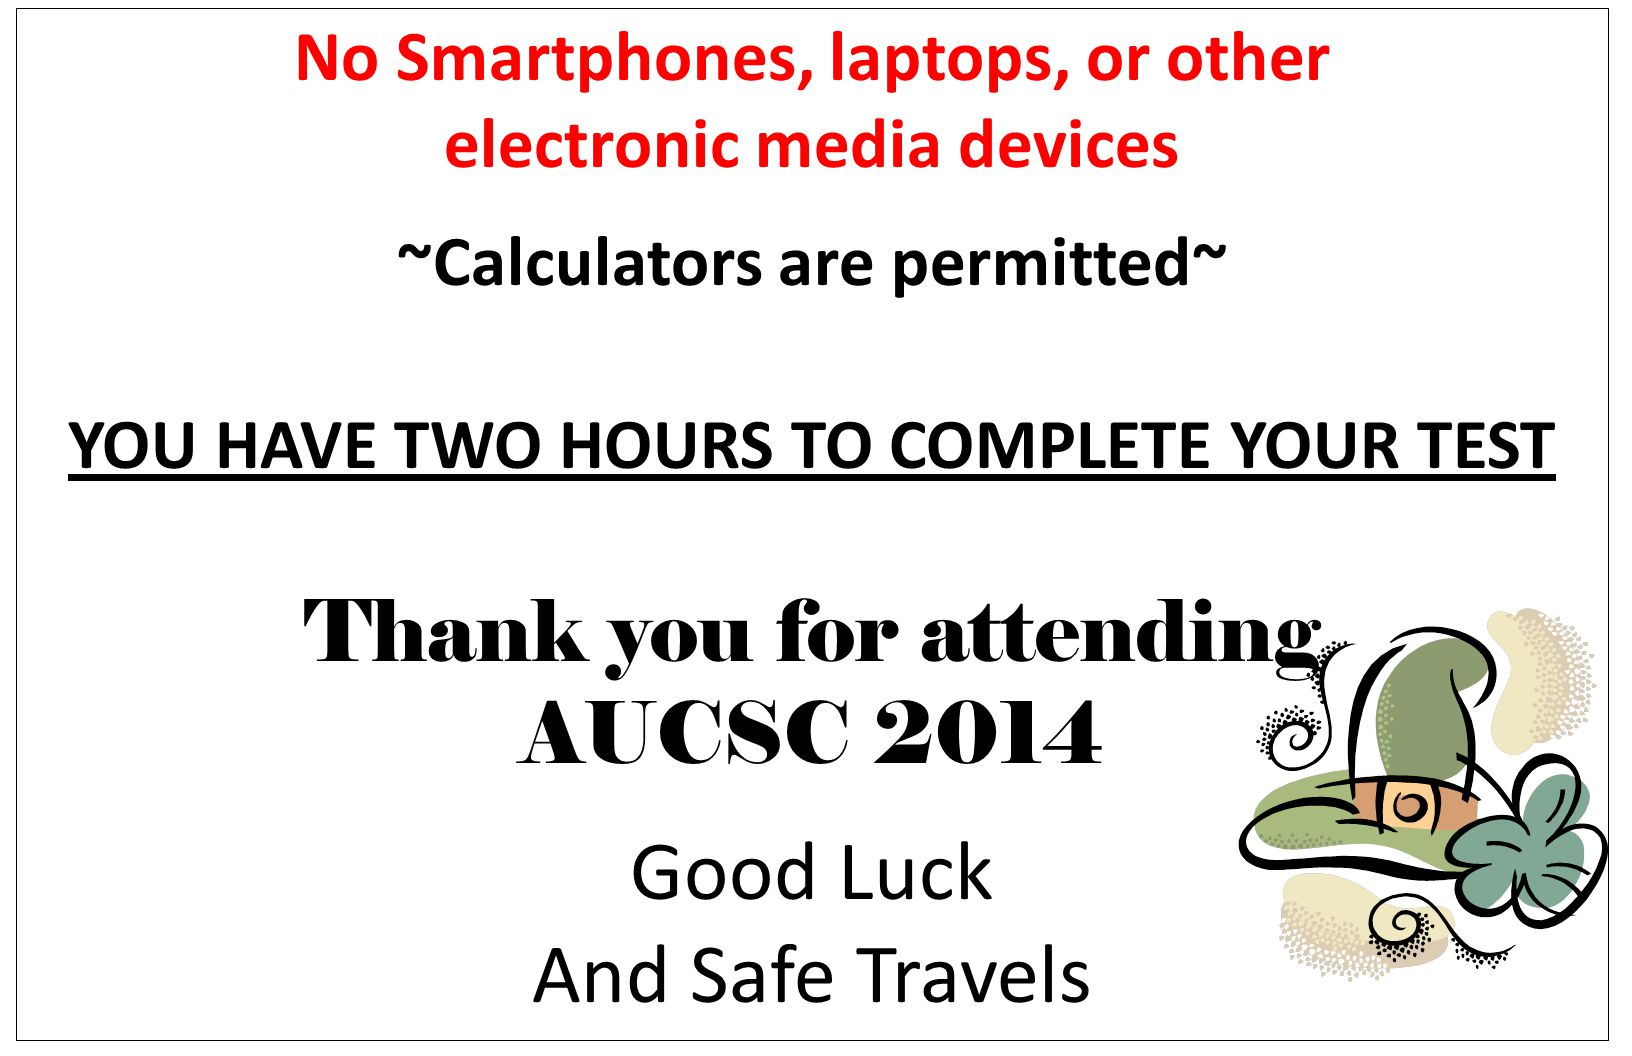 Thank you for attending AUCSC 2014 Good Luck And Safe Travels